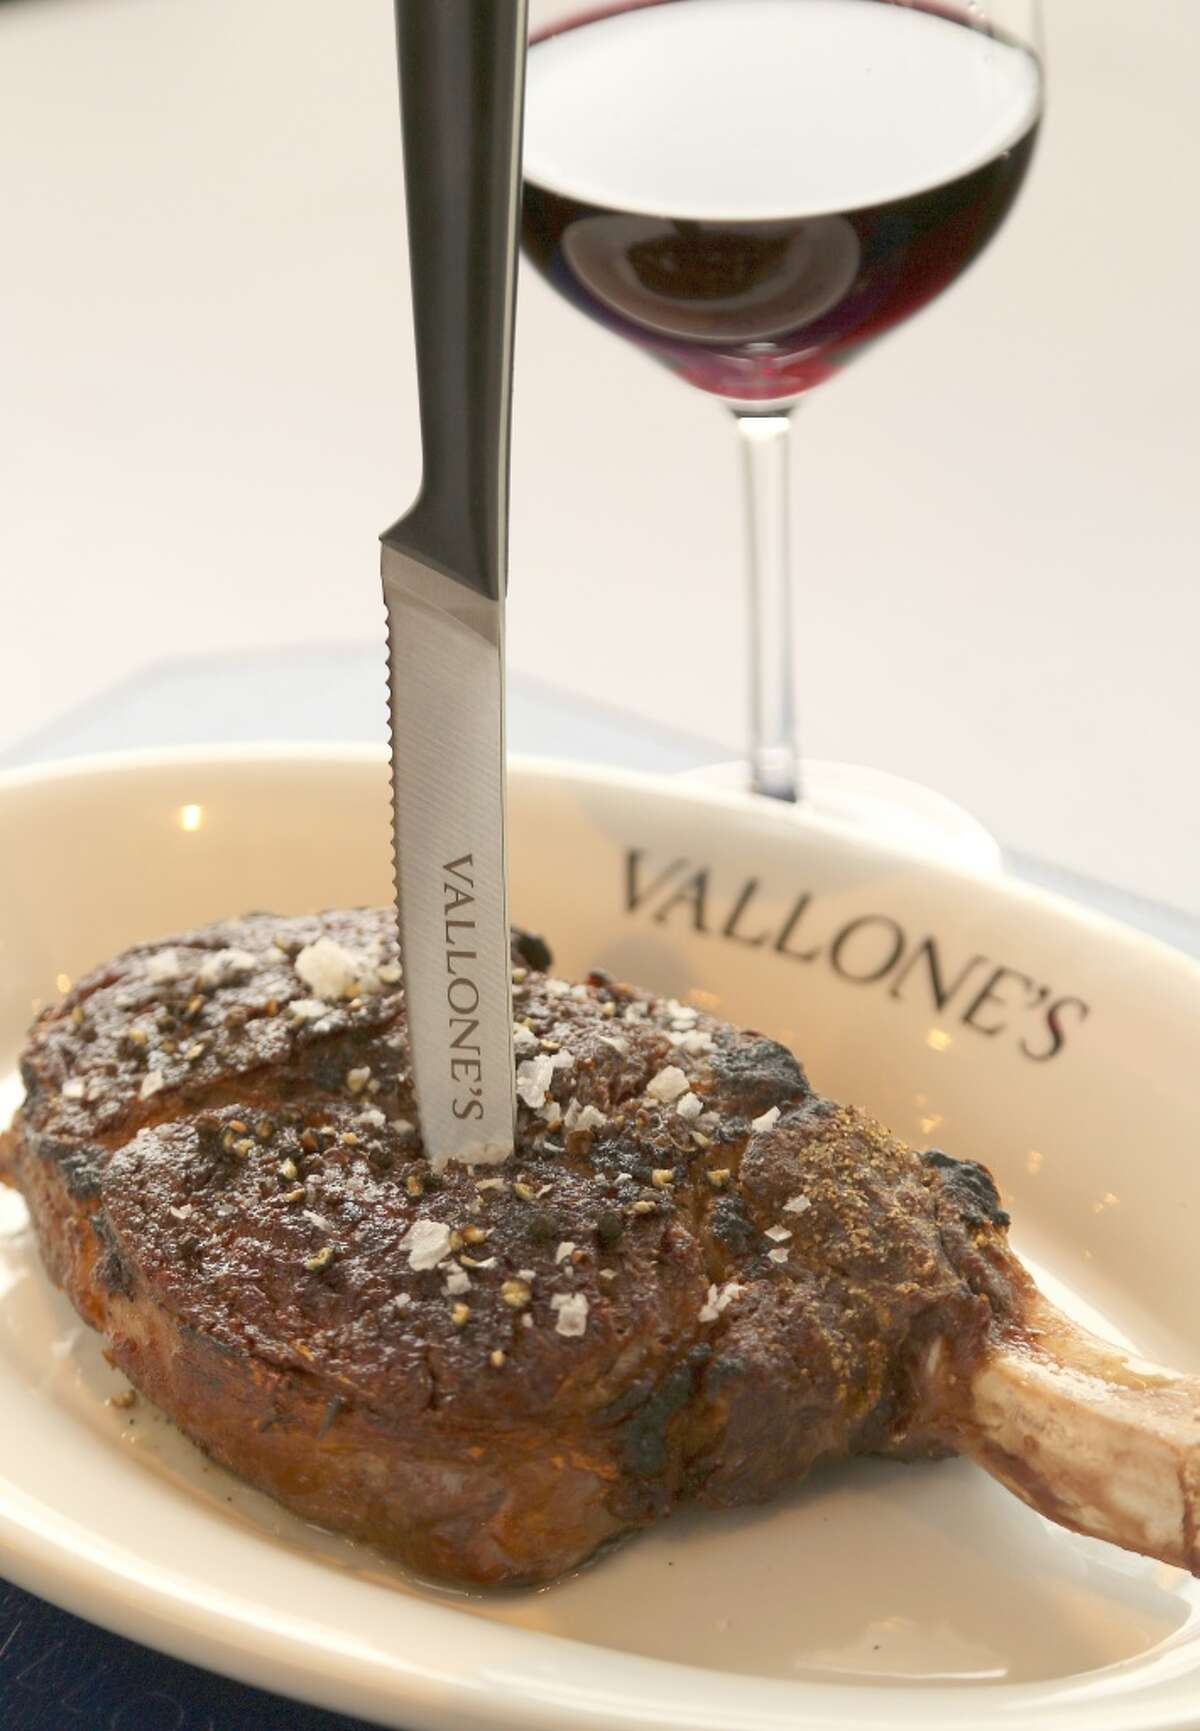 Fifty-five-day dry aged bone-in ribeye at Vallone's.